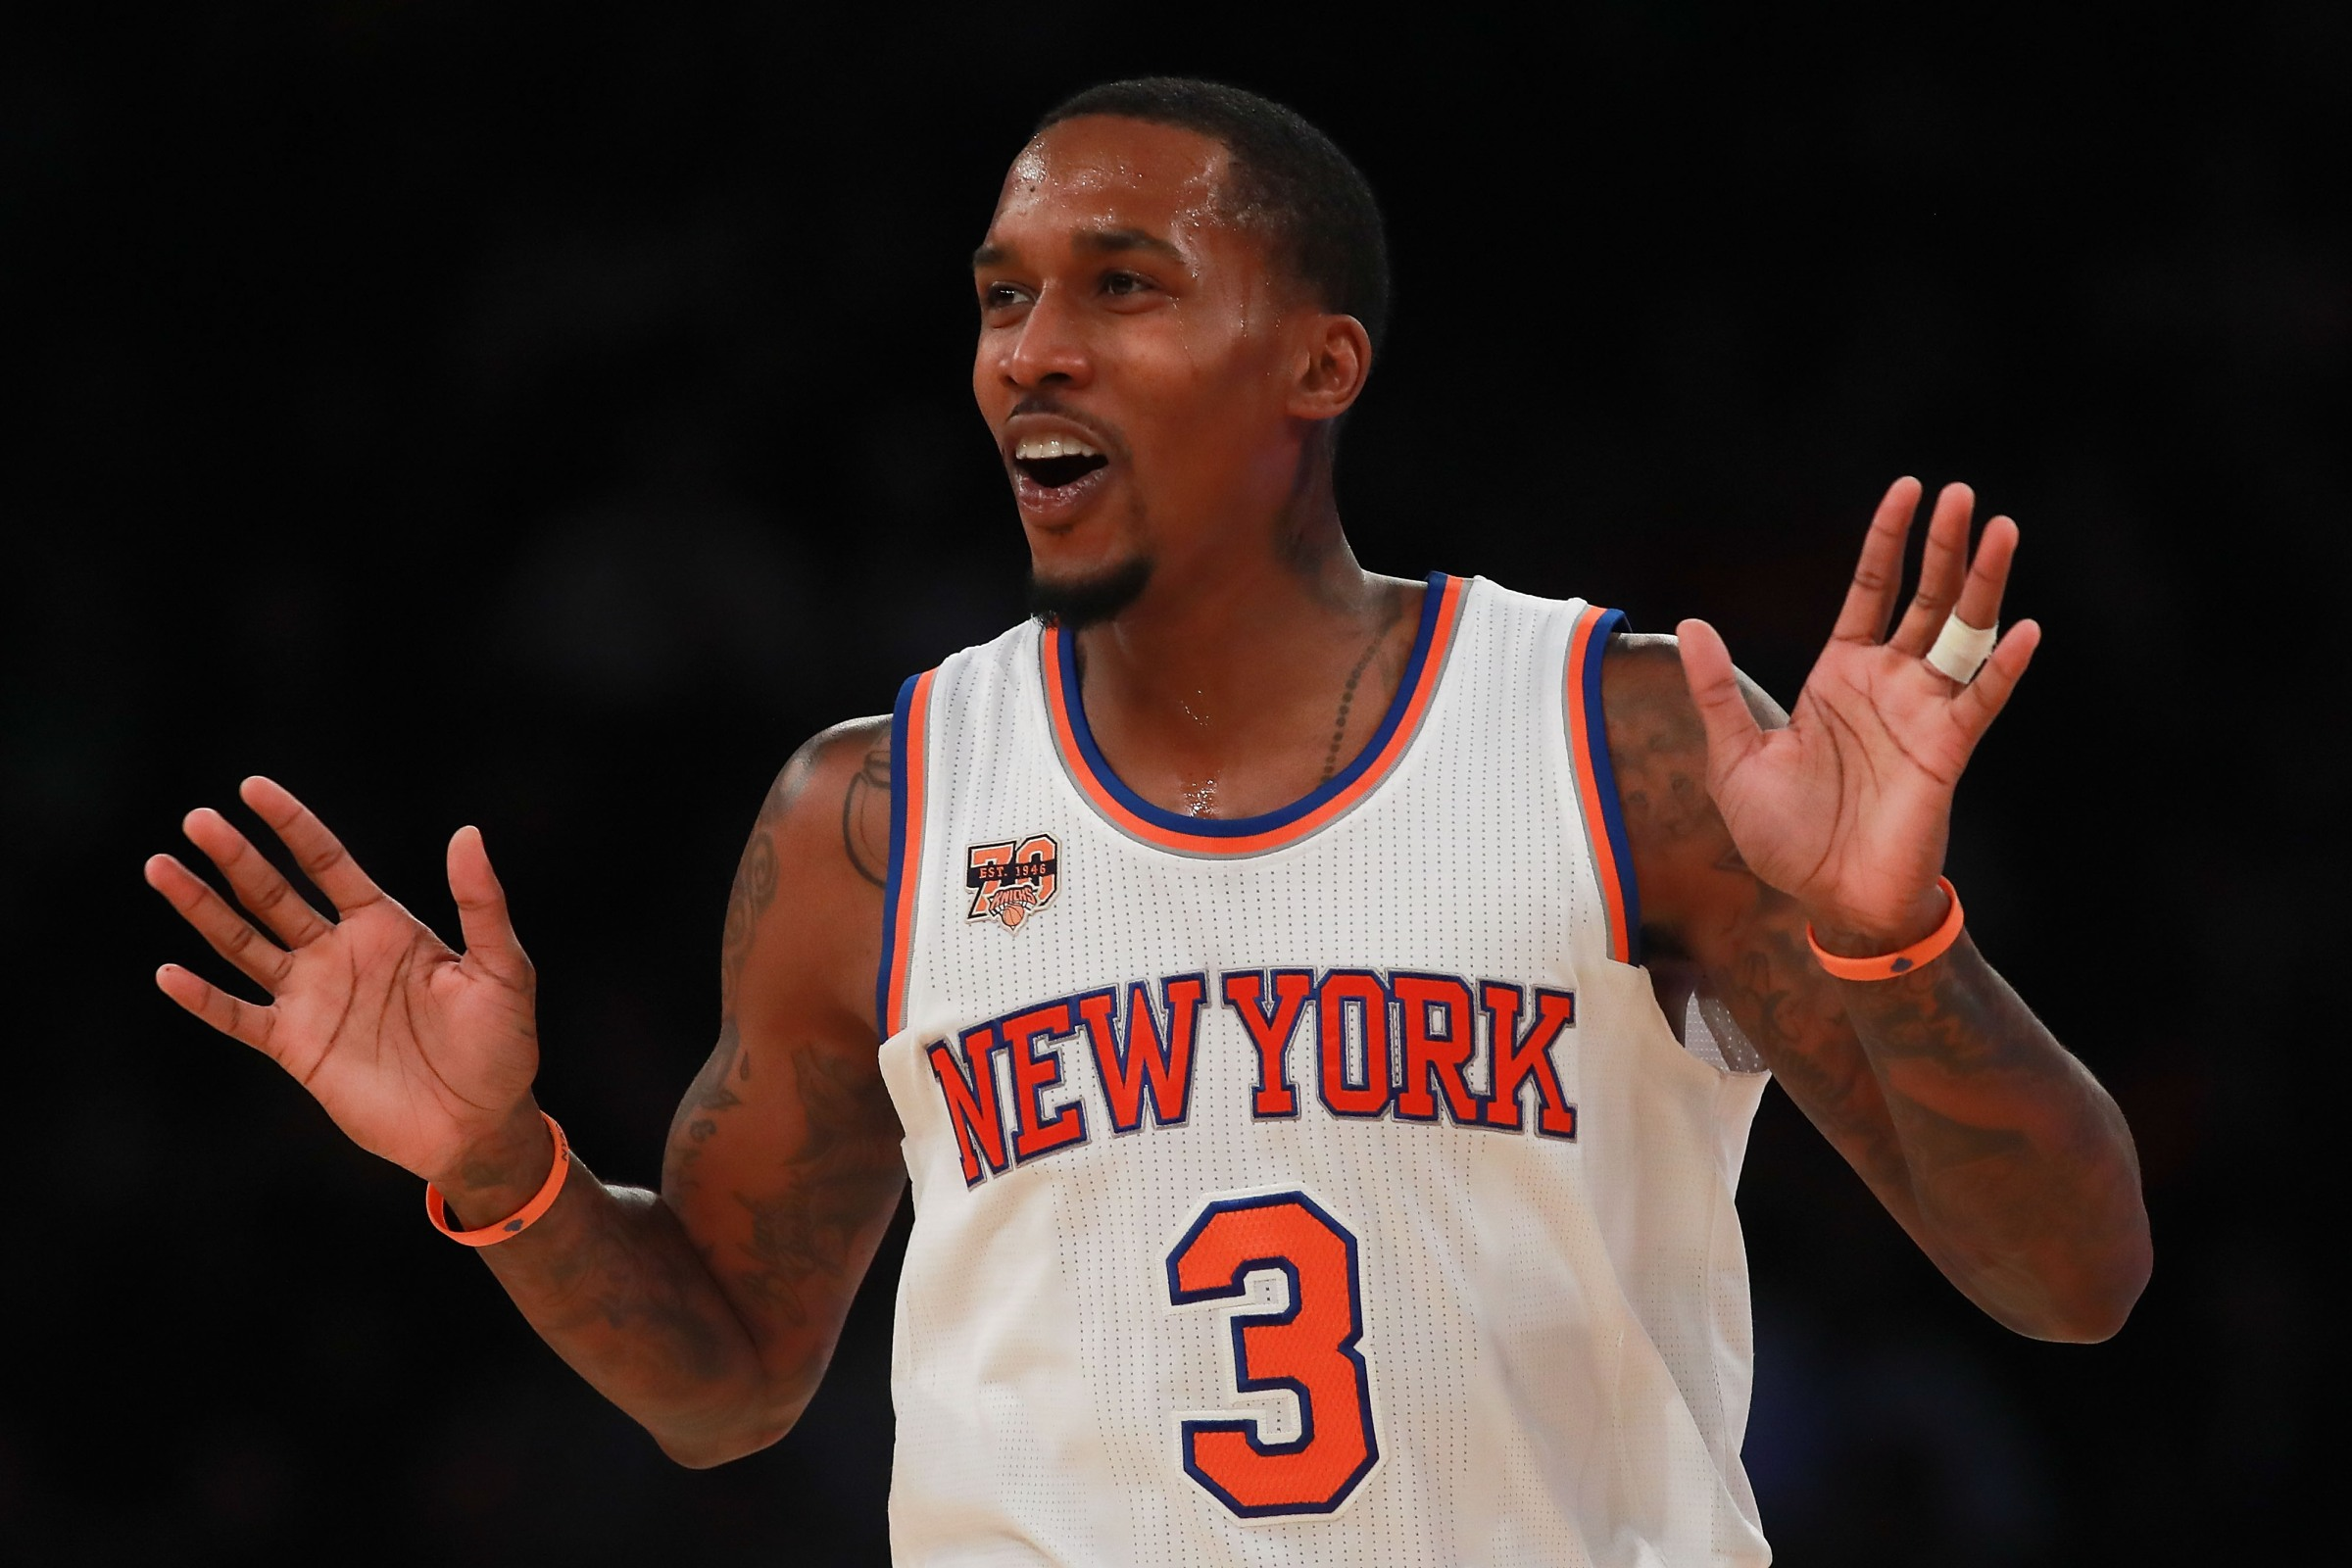 NBA megastar Brandon Jennings seen here objecting to a foul call while with the Knicks, a team he apparently played for.